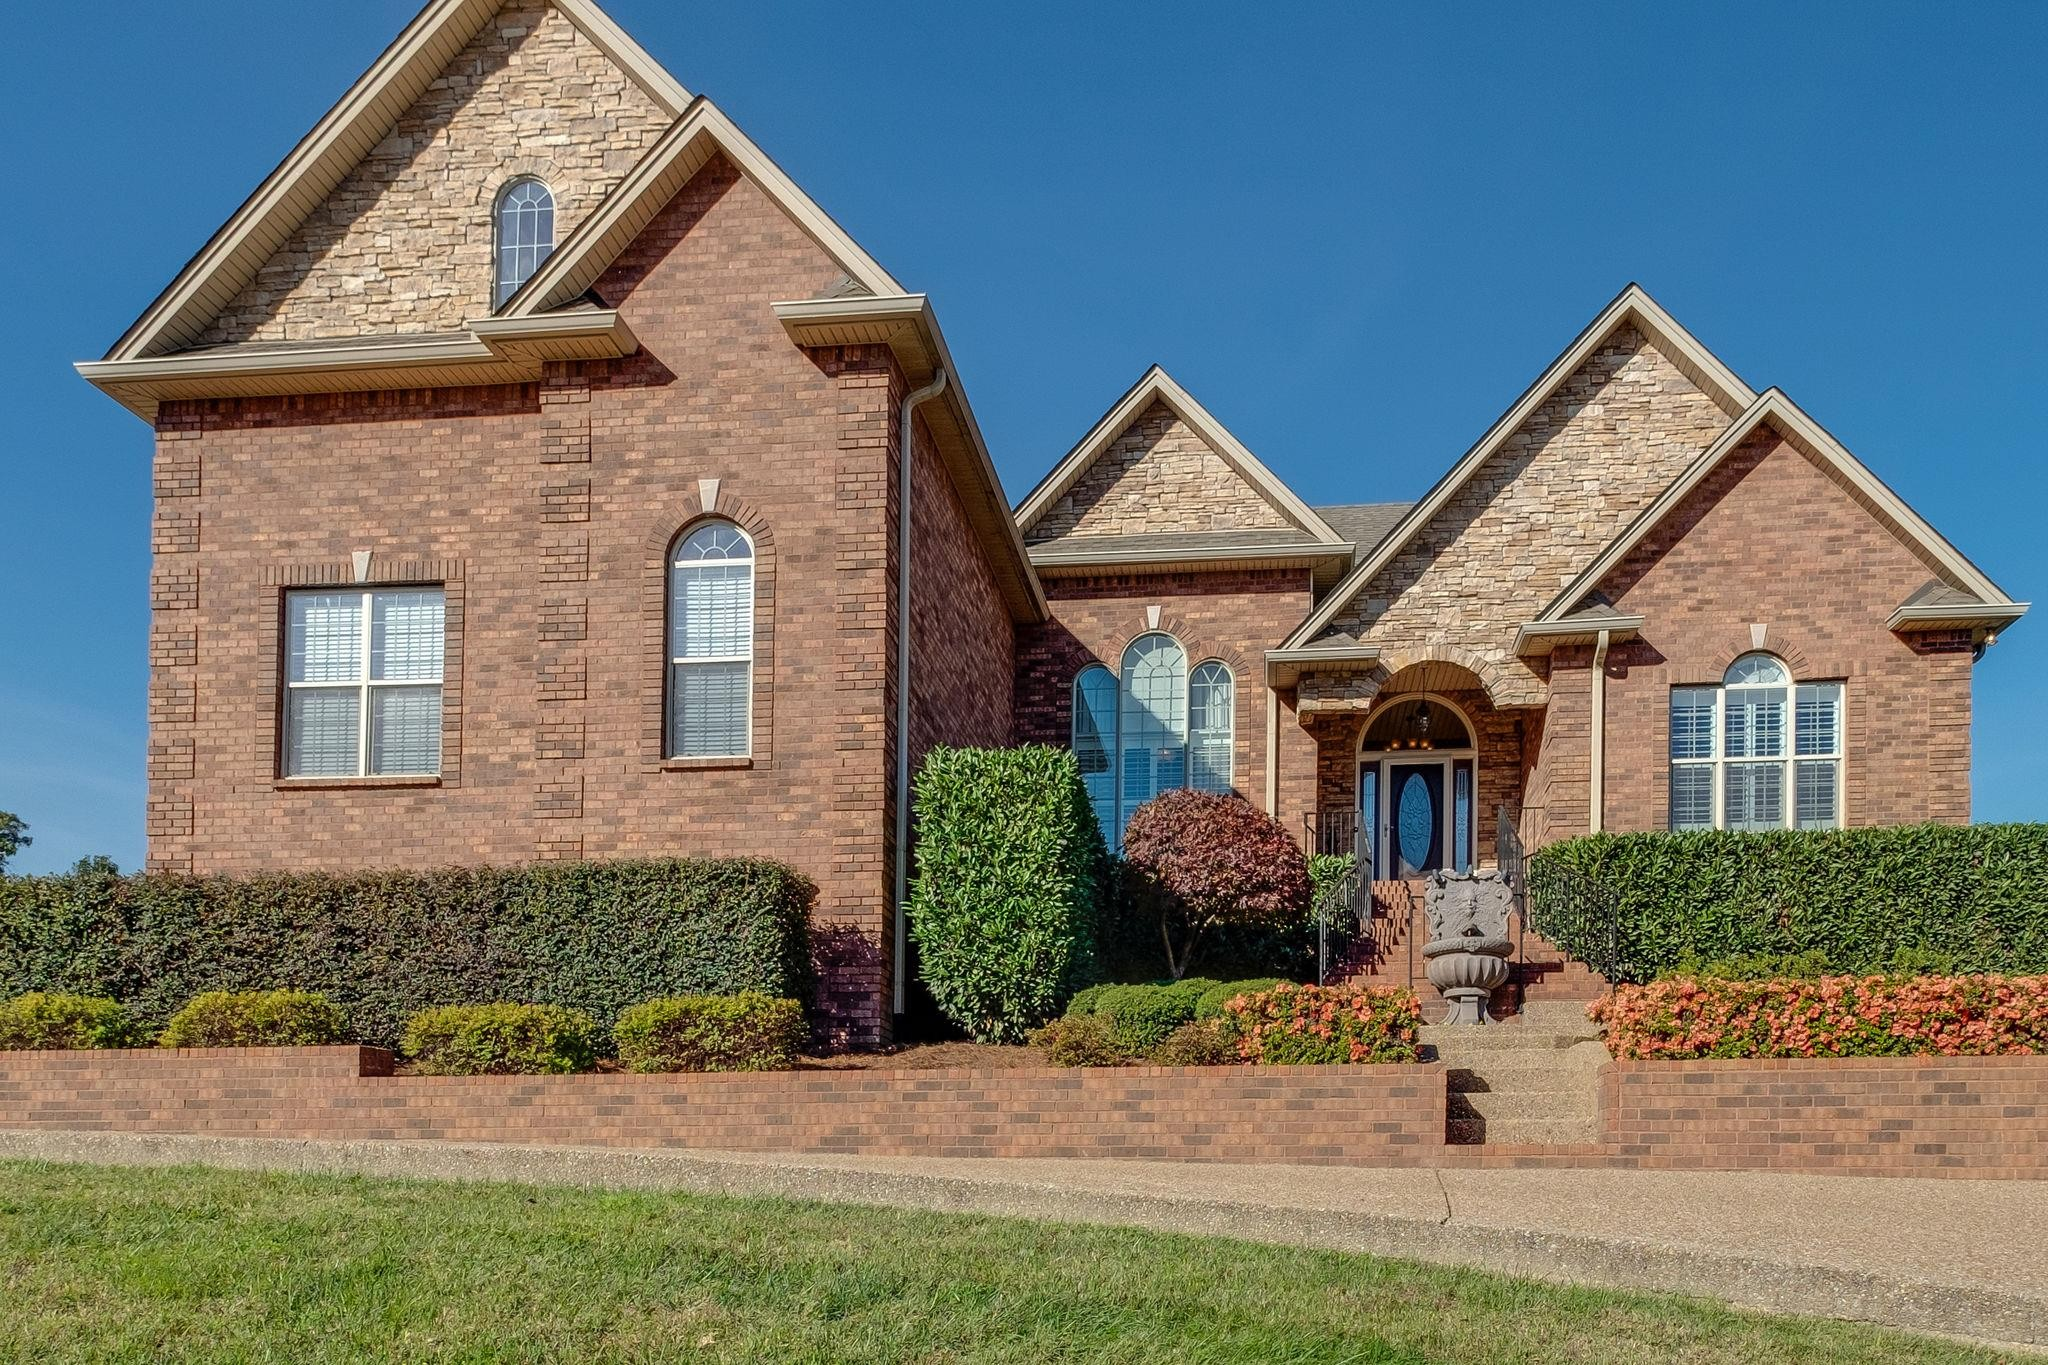 Gorgeous home! Quite Culdesac One level w/bonus up 20' ceiling in great room! Amazing master suite with stacked stone fireplace! Beautiful hardwoods! Kitchen and eat in area overlooks private back yard with awesome pool and covered patio, along w/outdoor kitchen! To top it all off - His and Her separate garages!